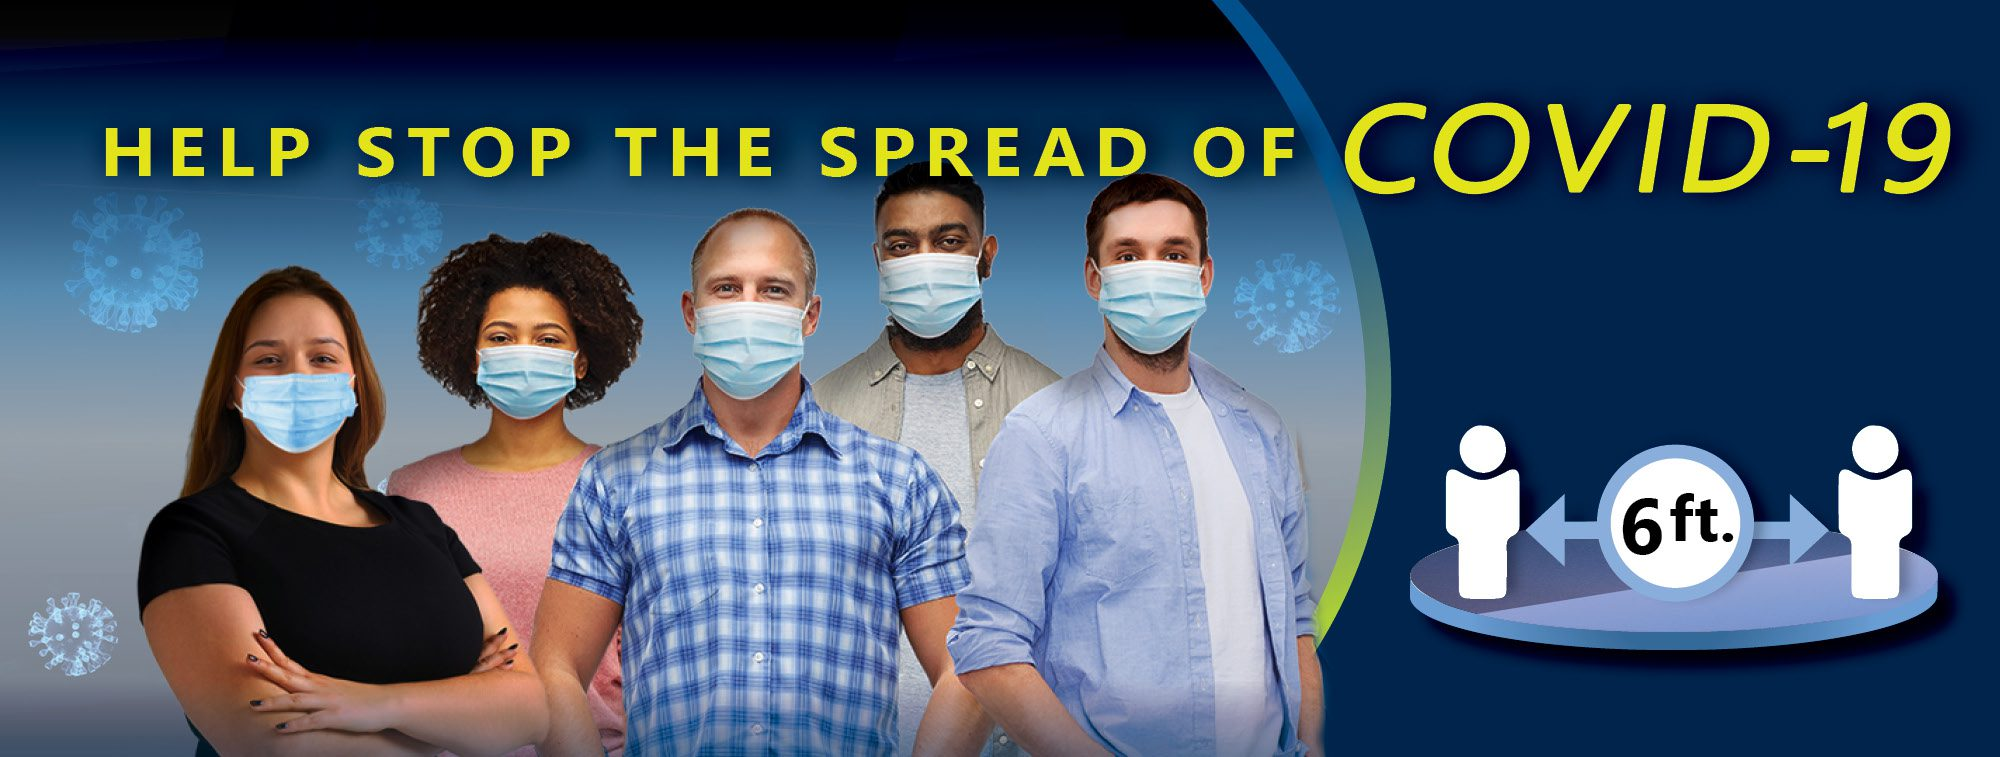 """Picture of people wearing masks with title that reads """"Help Stop the Spread of COVID-19""""."""